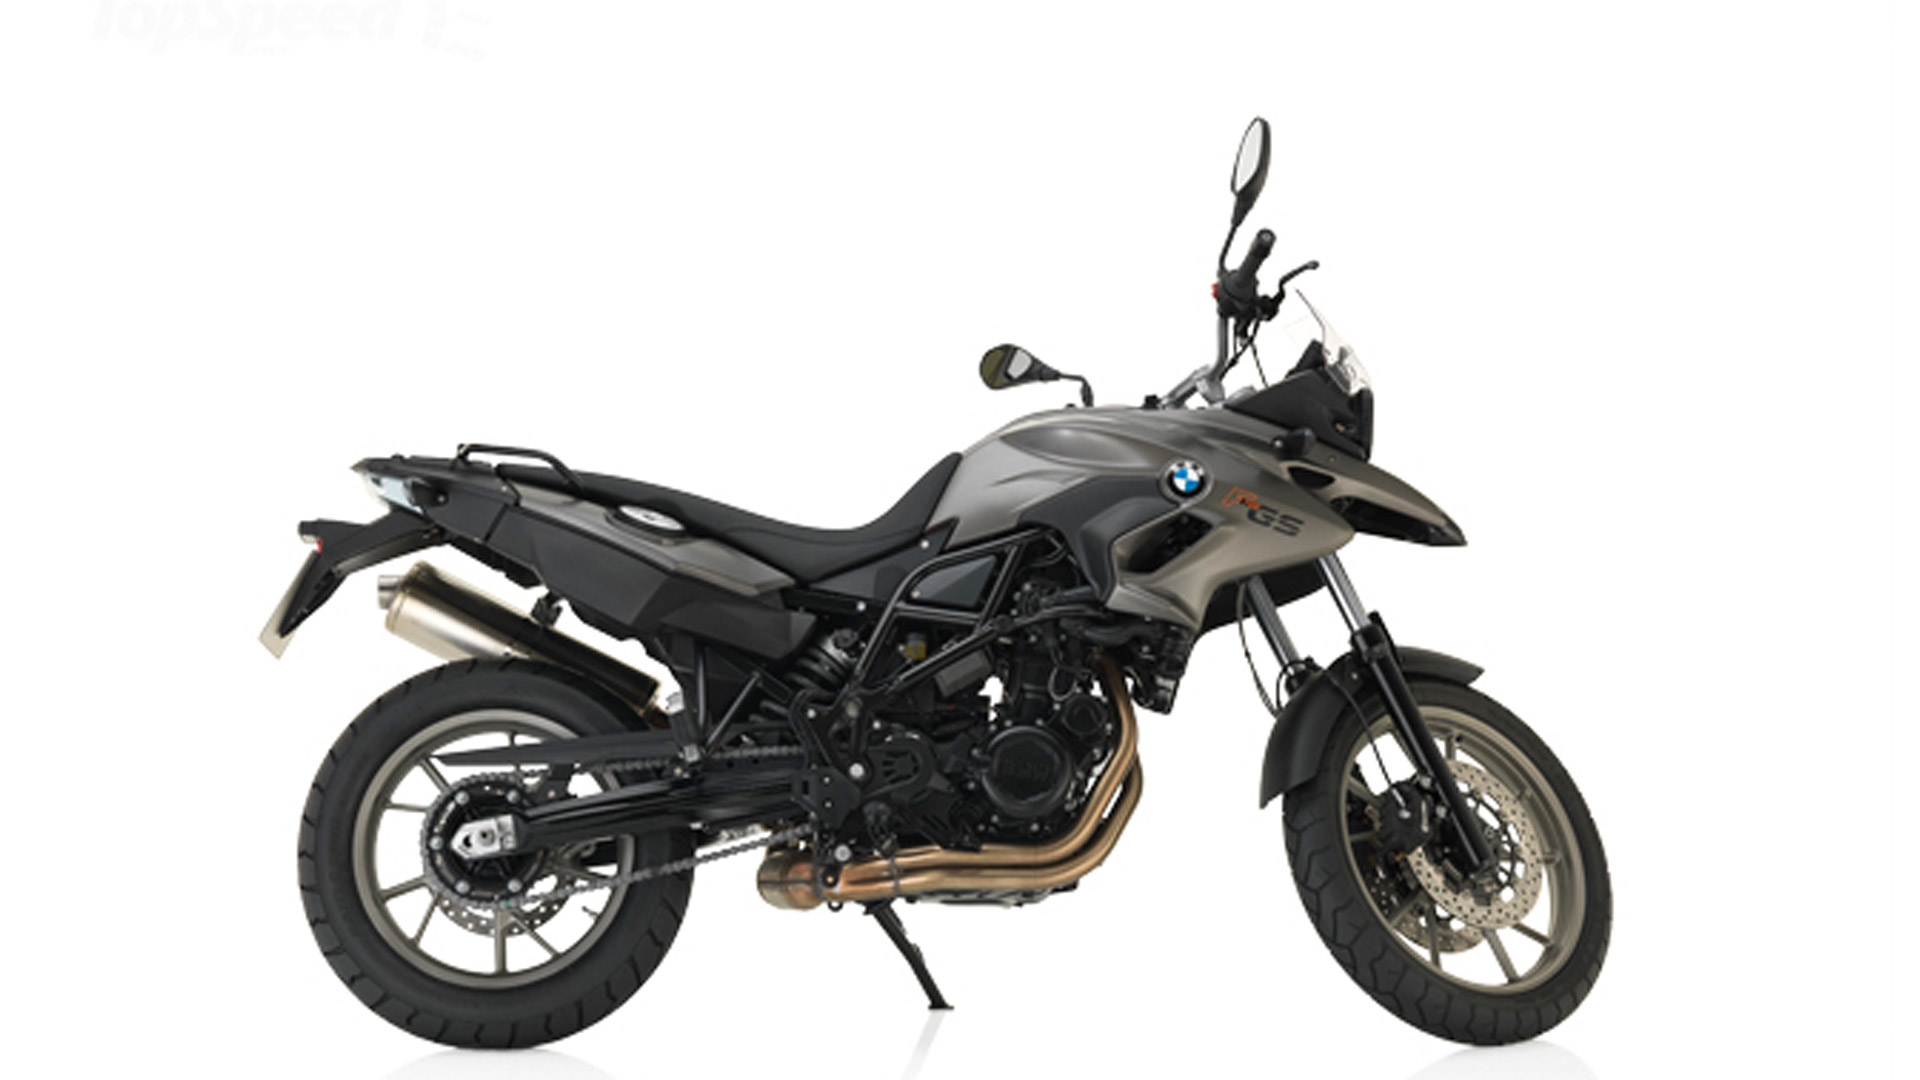 BMW F700GS ABS PARTS